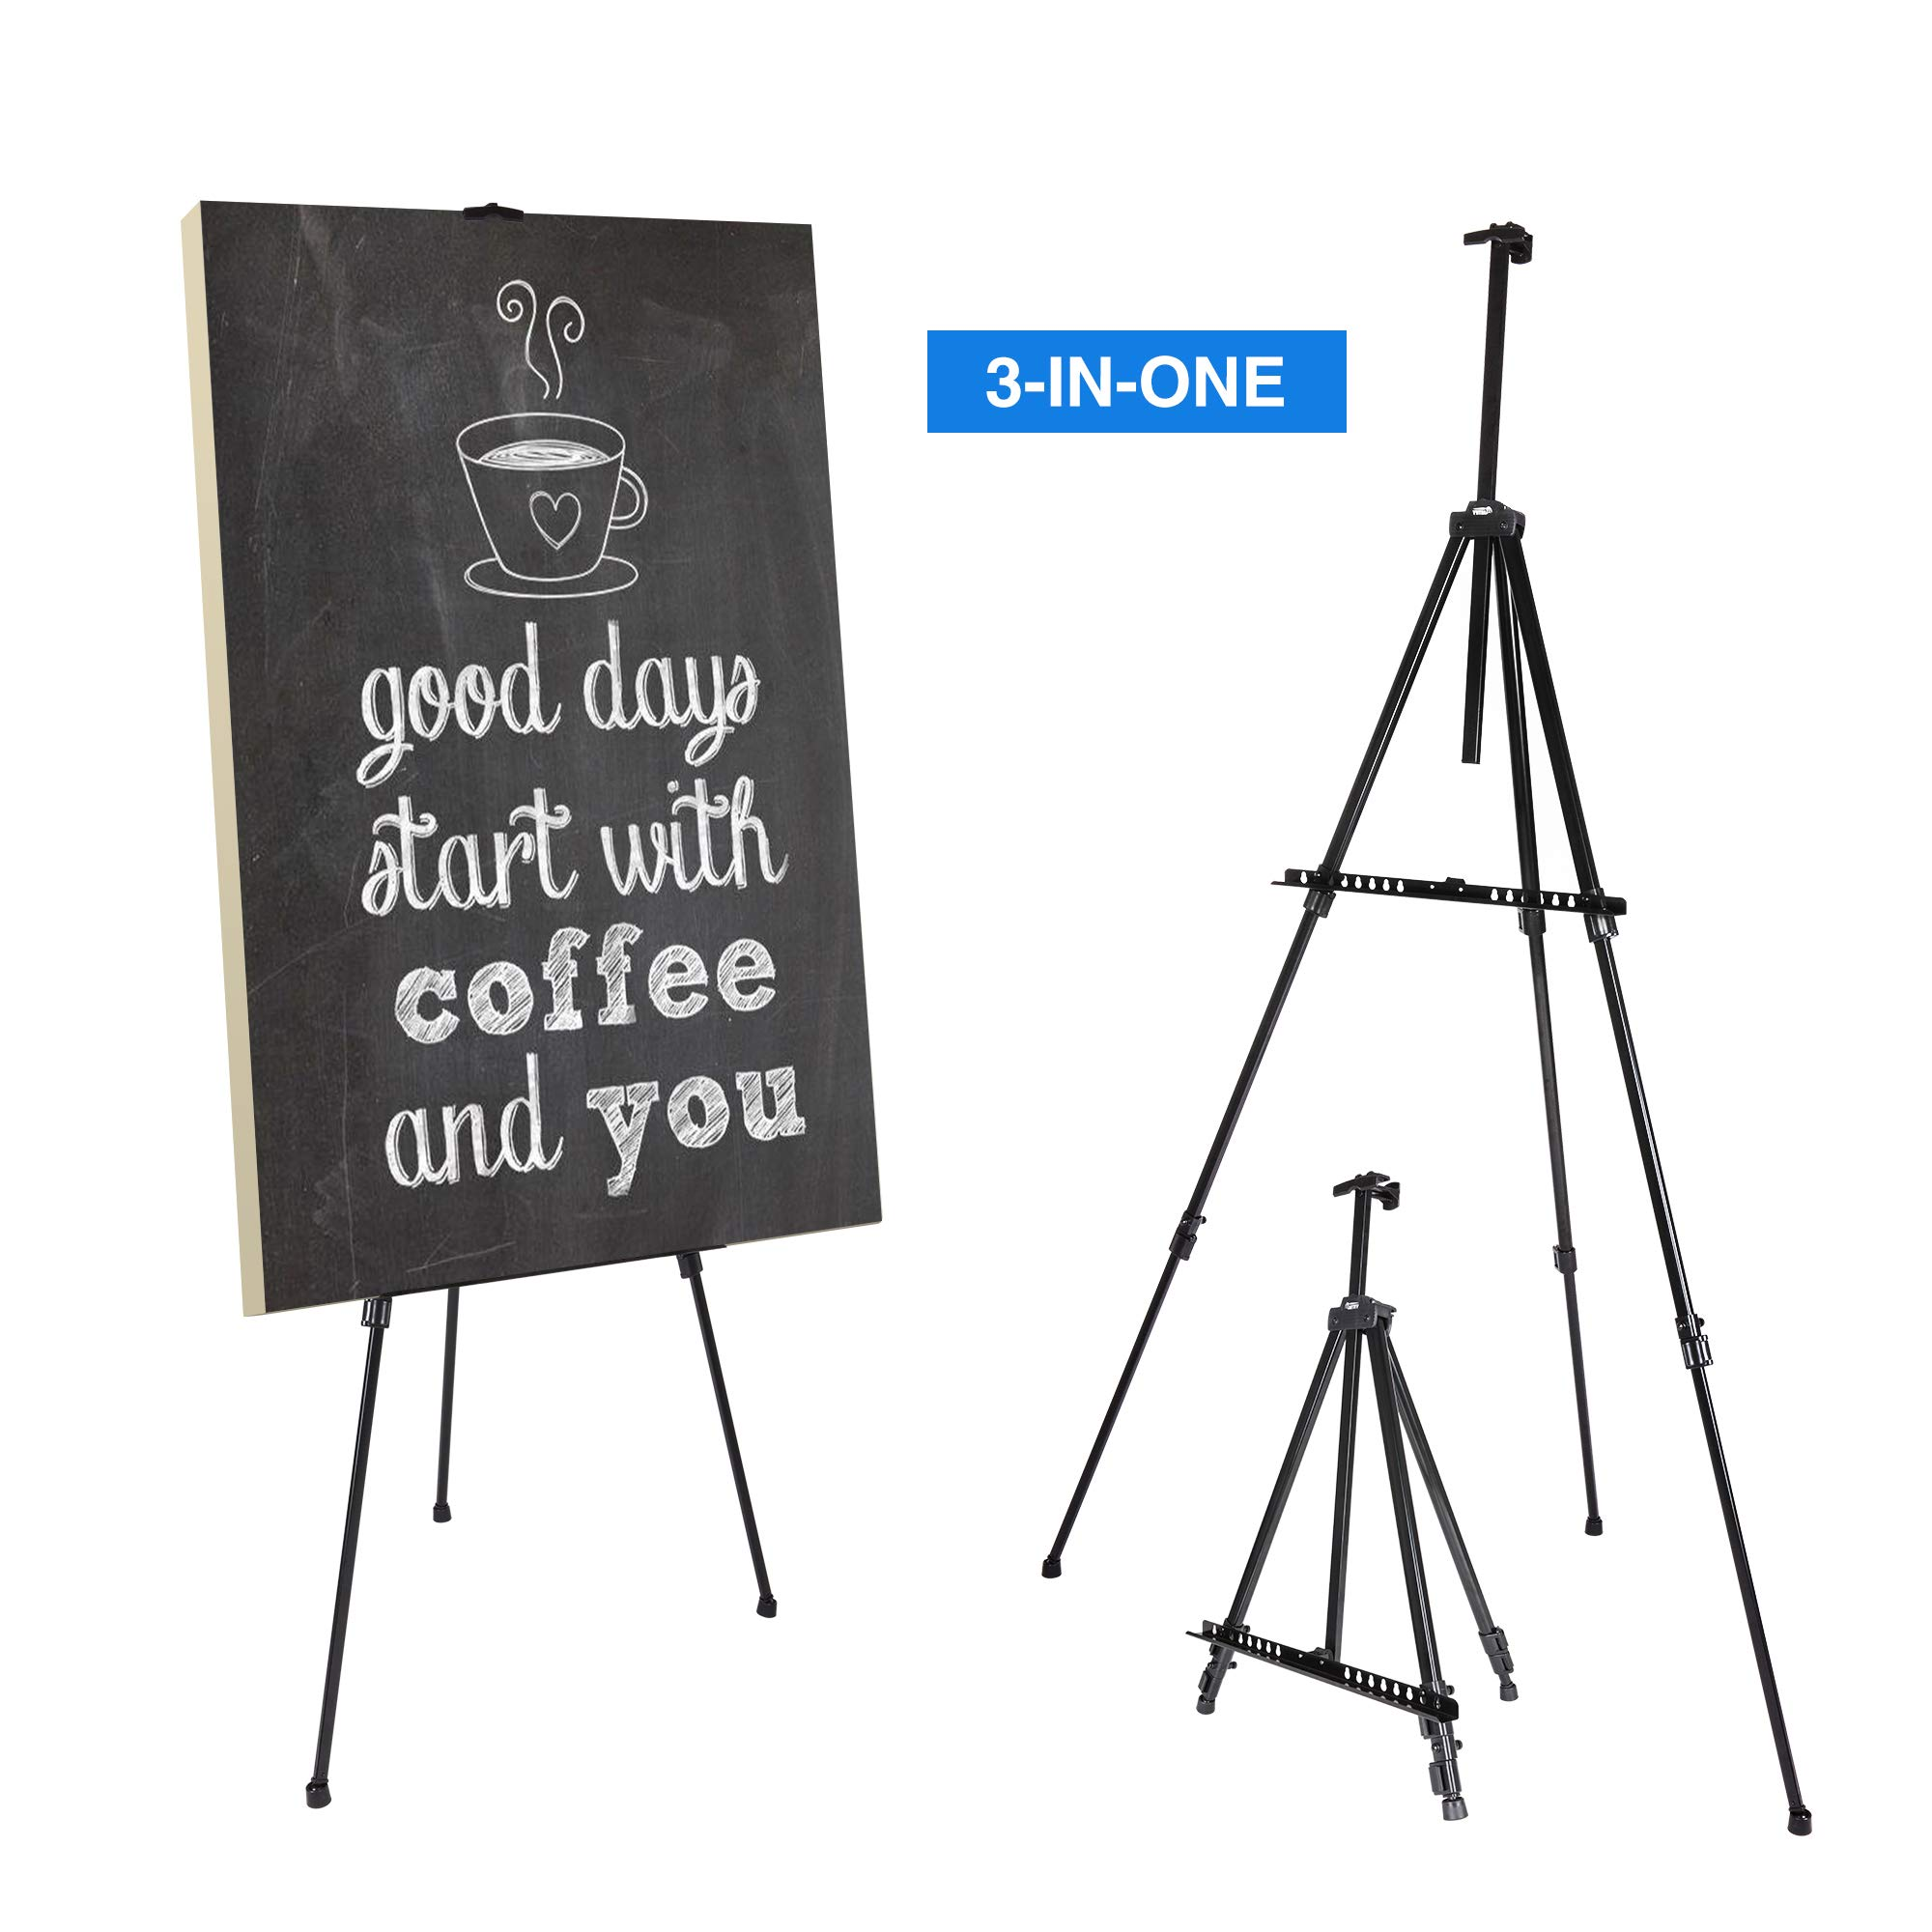 Artify 73'' Double Tier Easel Stand, Aluminum Tripod for Painting and Display with an Environmental Friendly Carrying Bag and Spare Parts